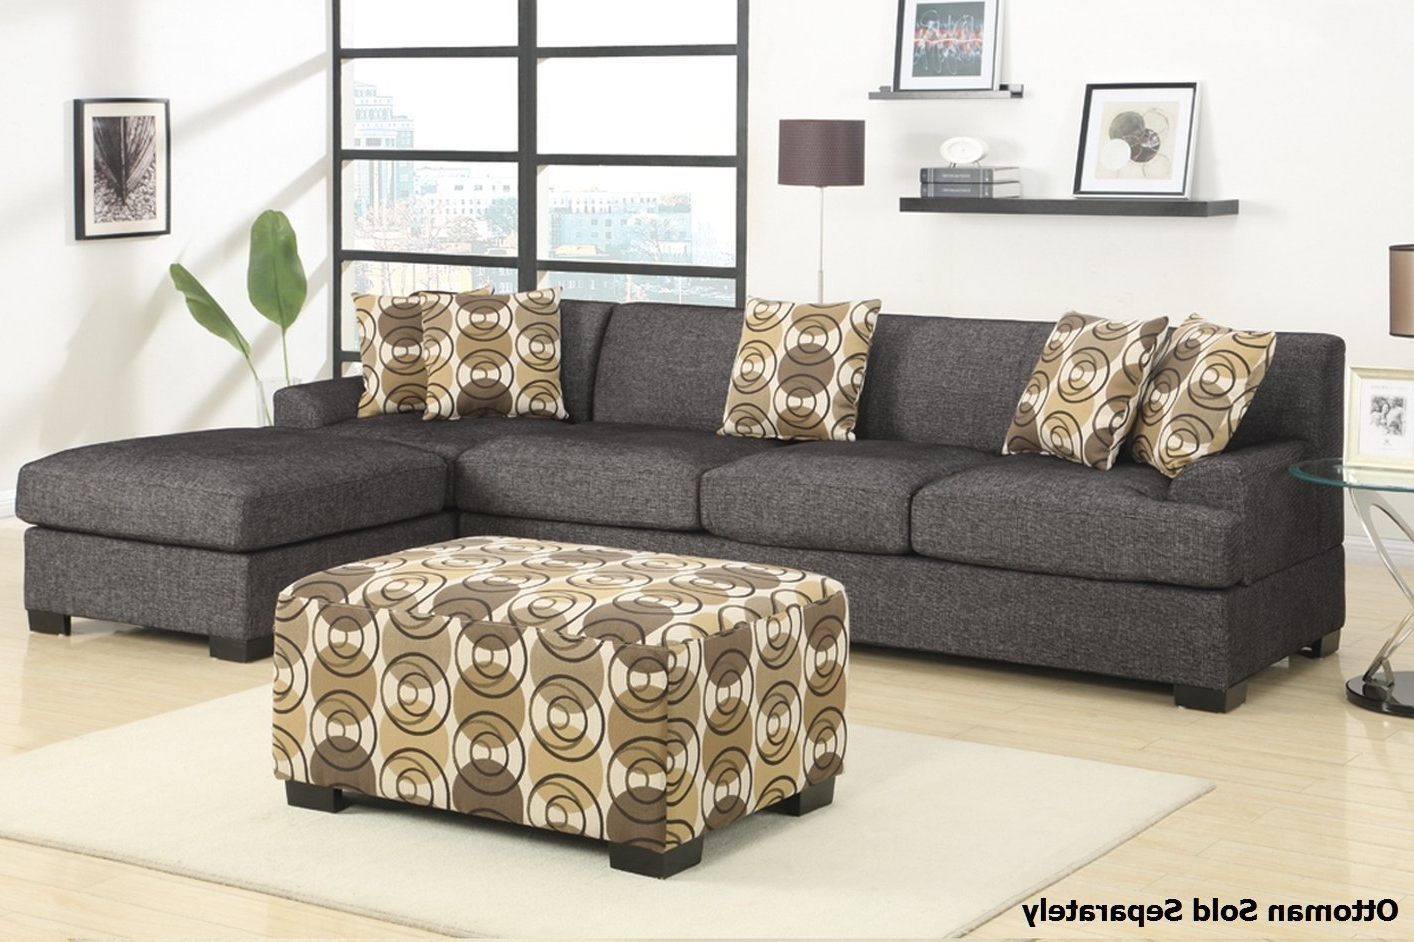 Montreal Sectional Sofas Within Well Known Montreal Iii Grey Fabric Sectional Sofa – Steal A Sofa Furniture (View 14 of 20)